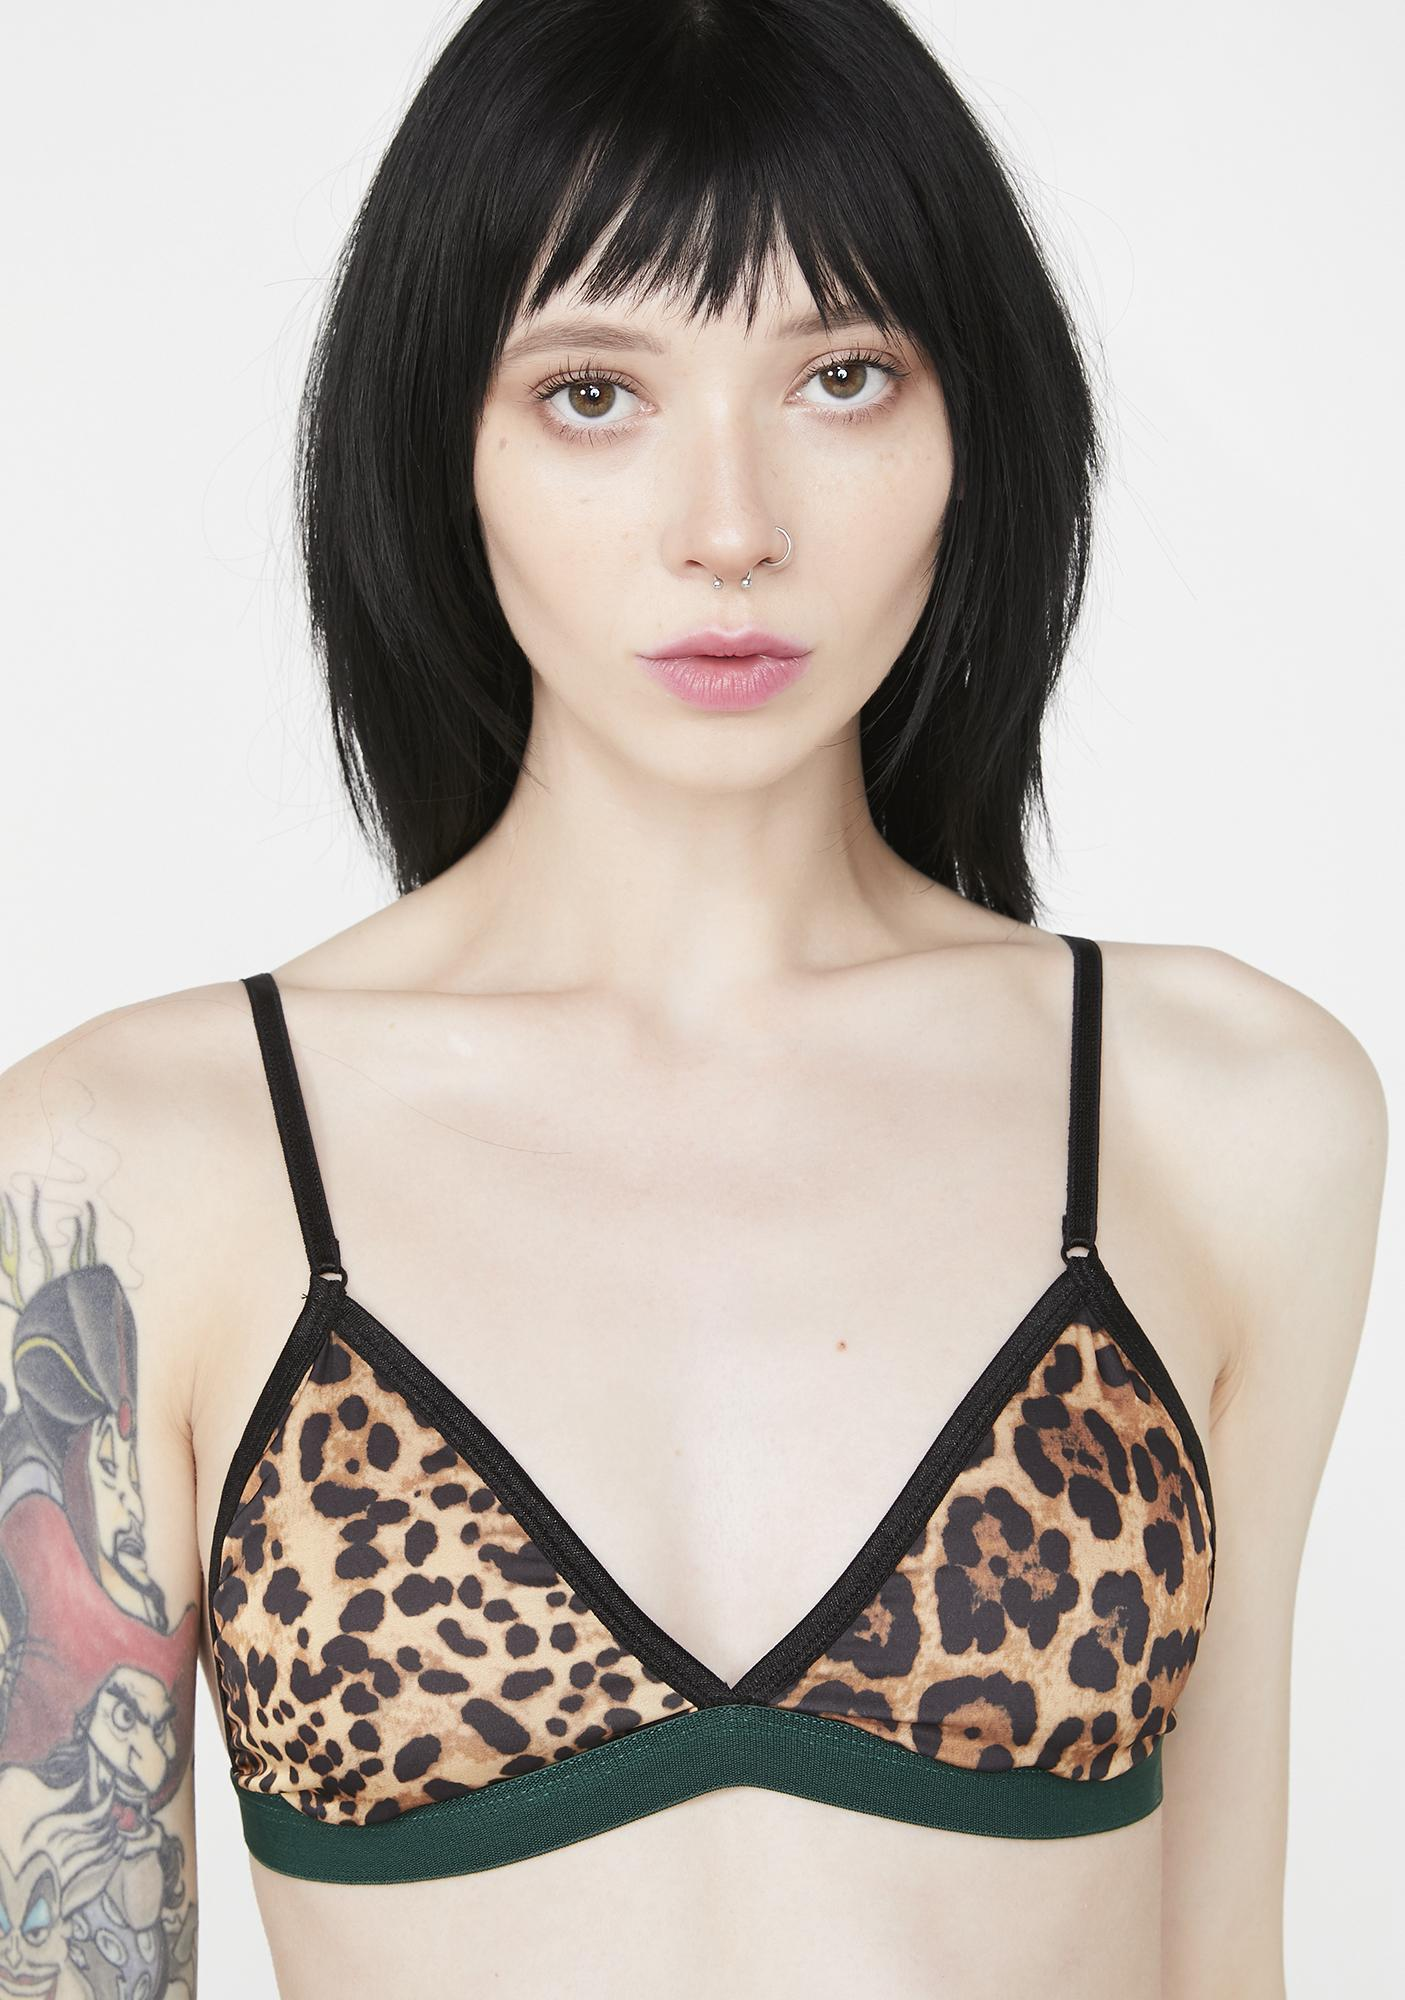 NGHTBRD Leopard Black Tapes Bra